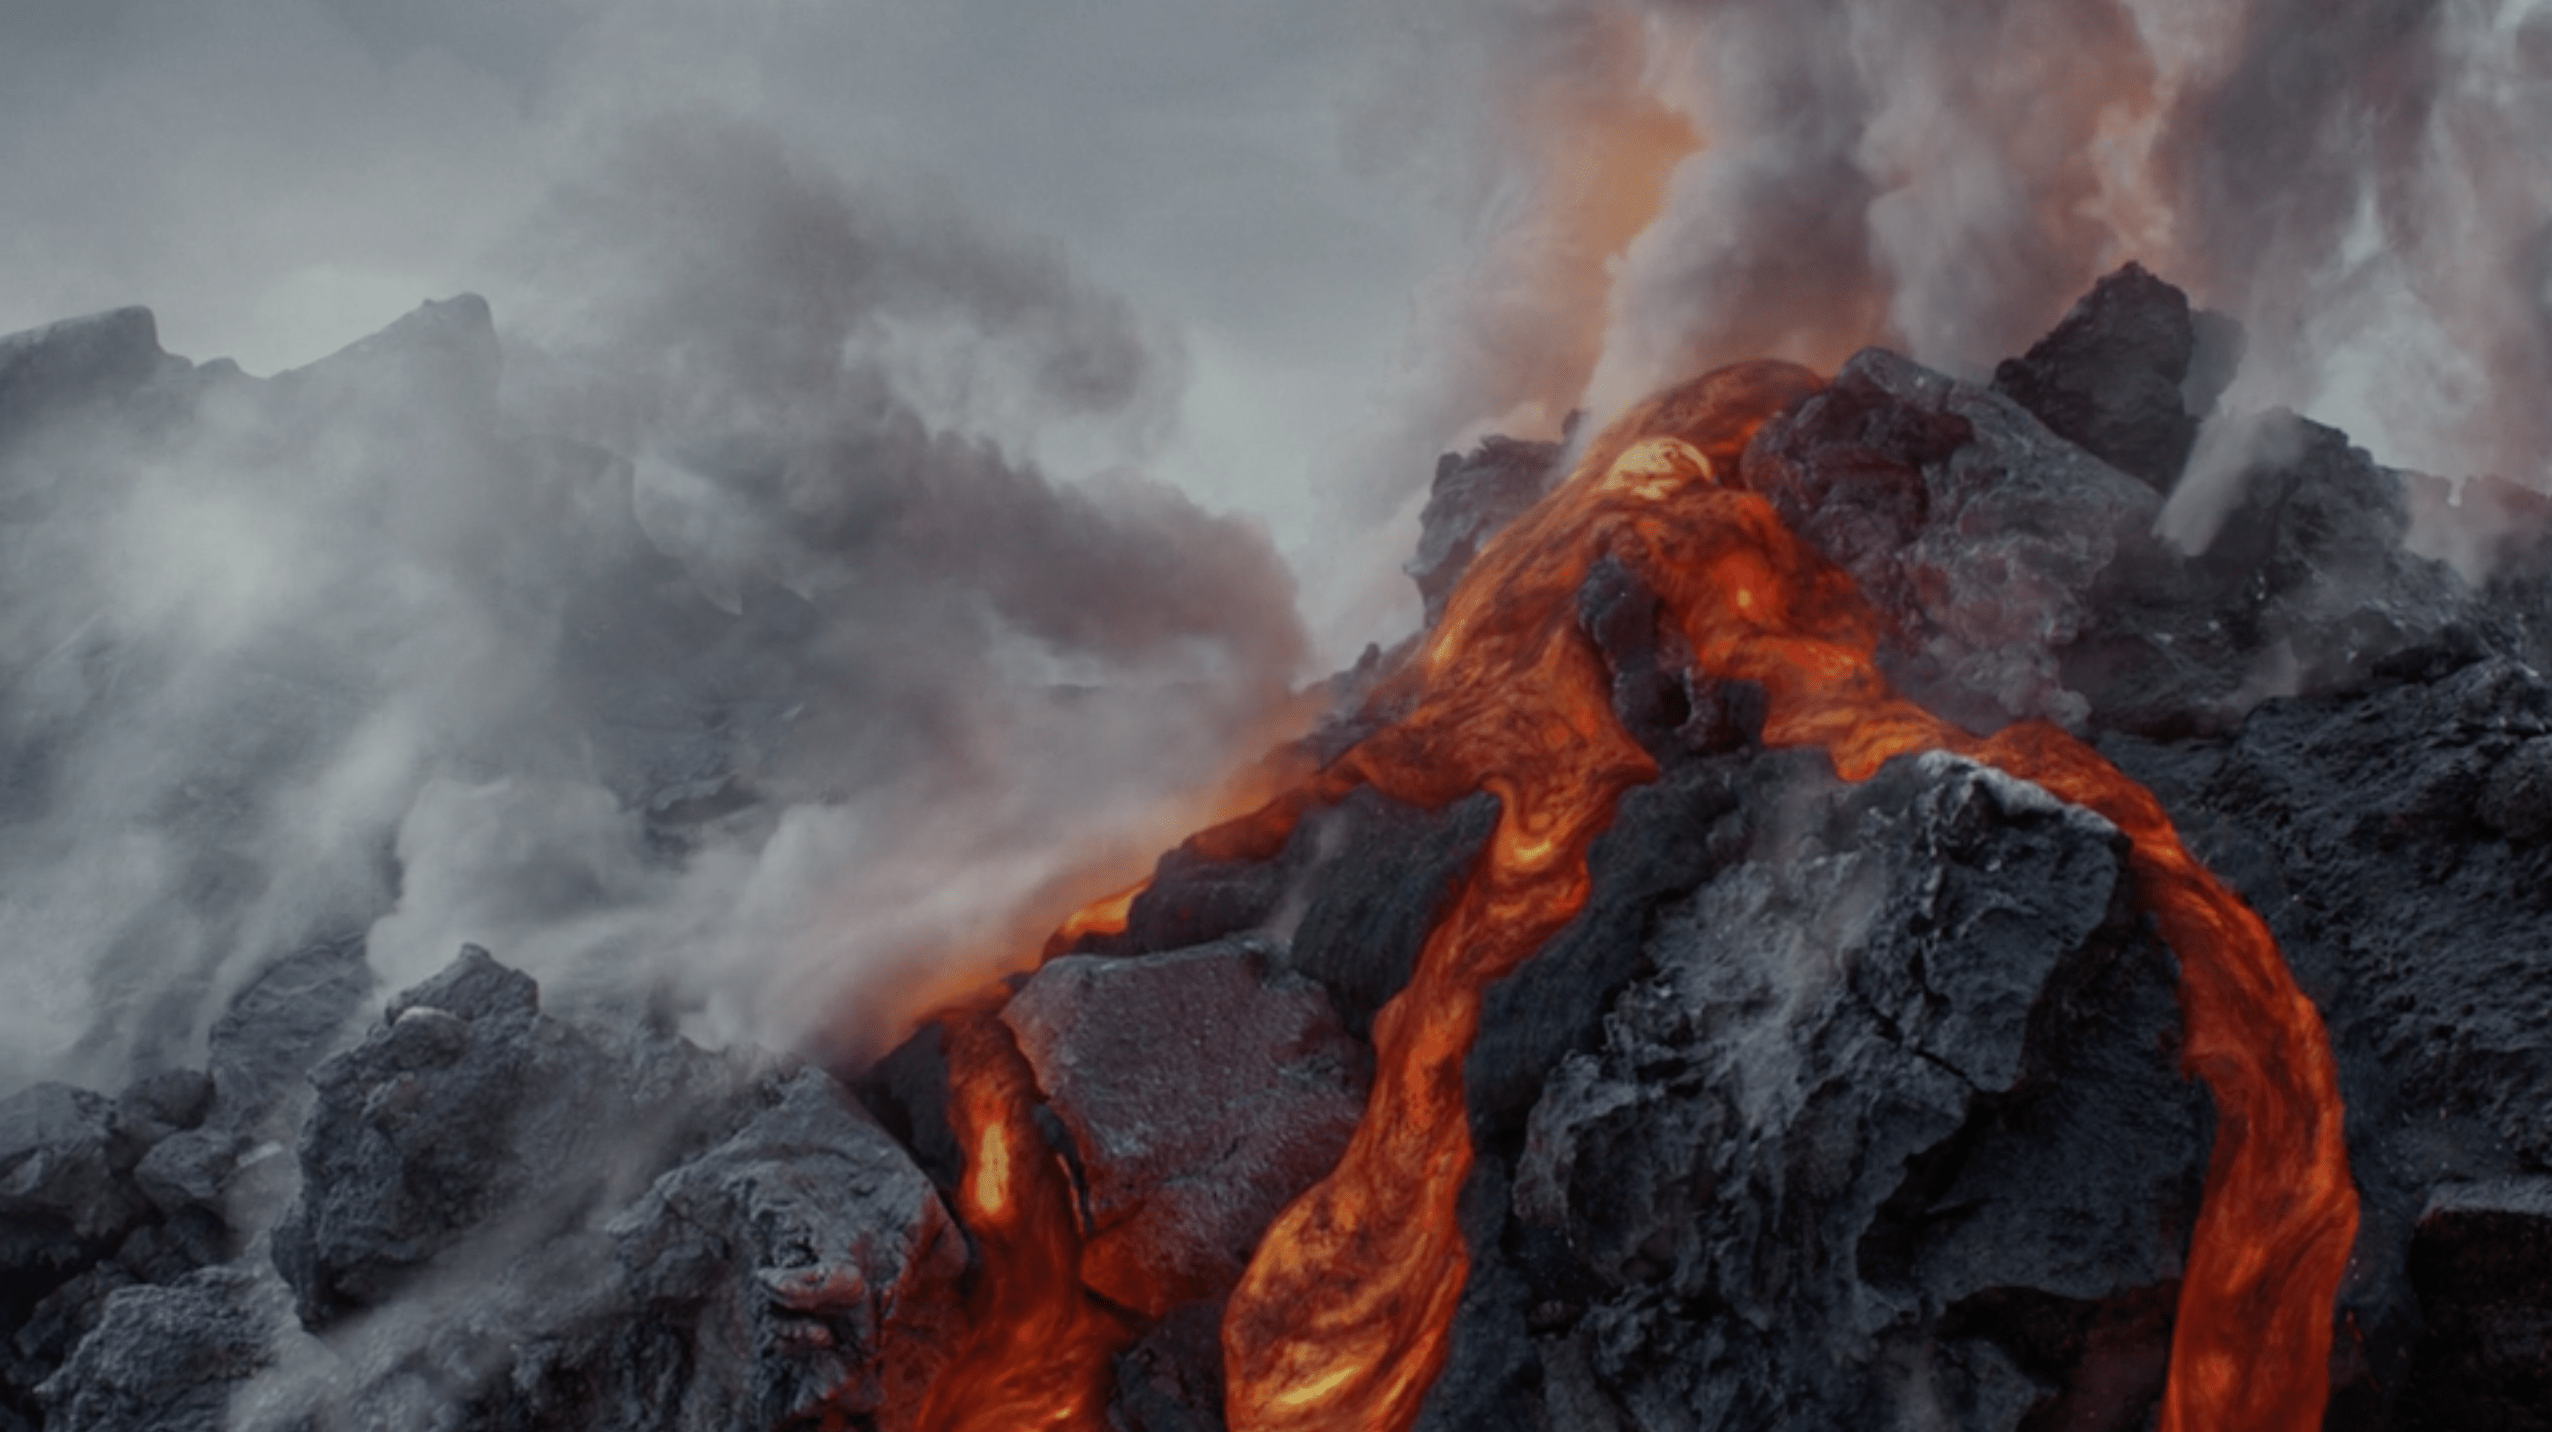 Lava at the heart, Conveying there is no masking the truth, design